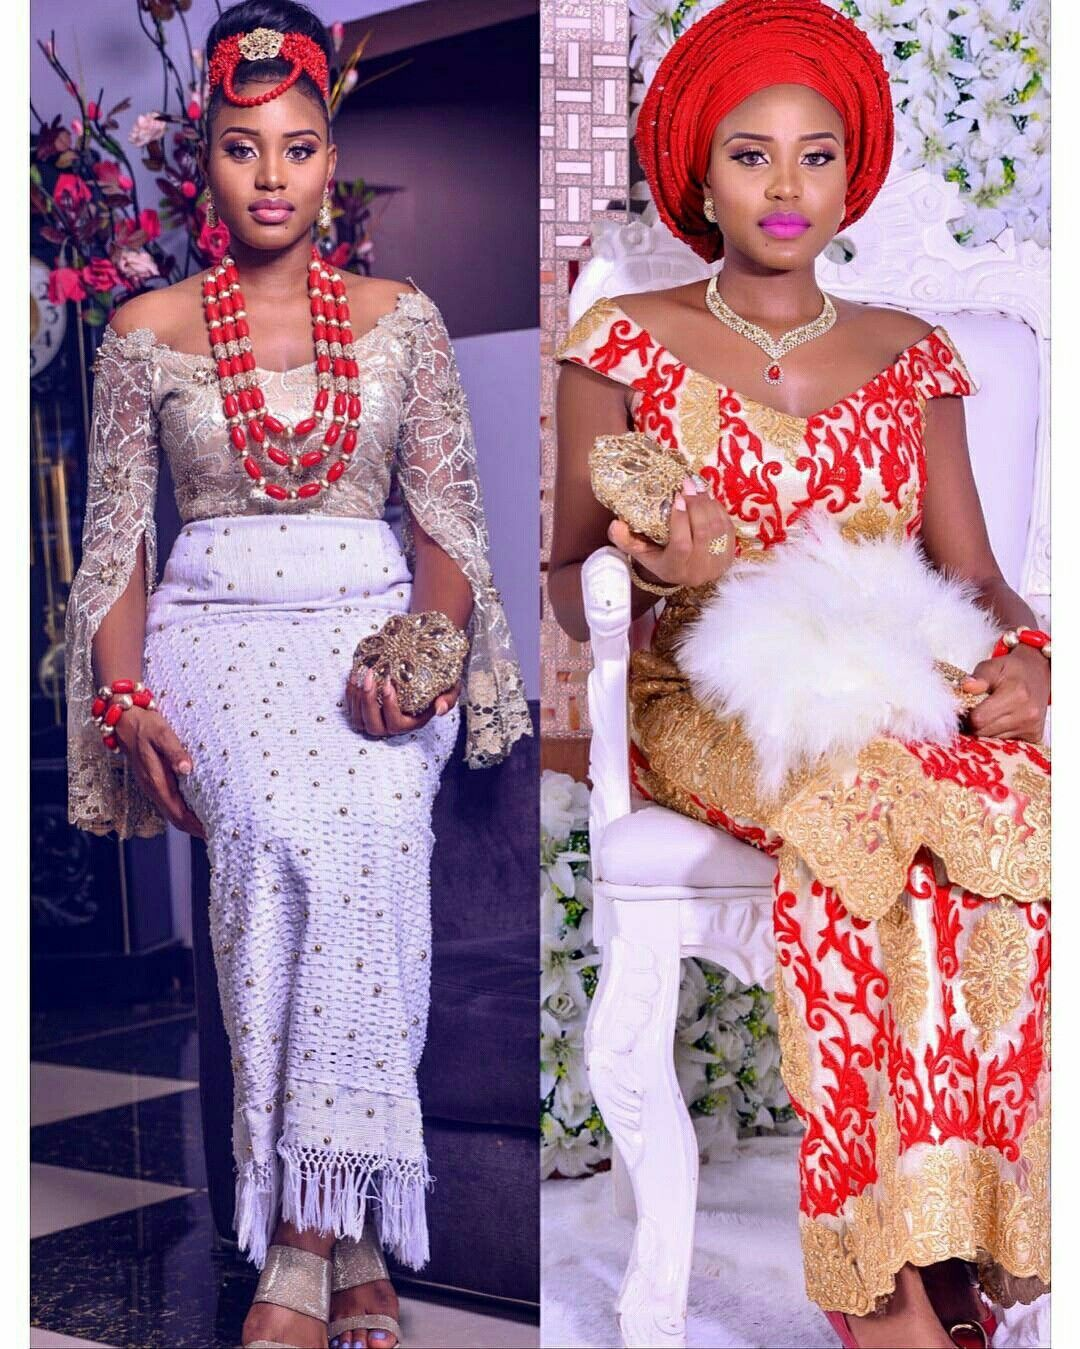 Nigerian Wedding Fashion: Close Up On @uchegermaine'a Looks At Her Wedding. A Or B